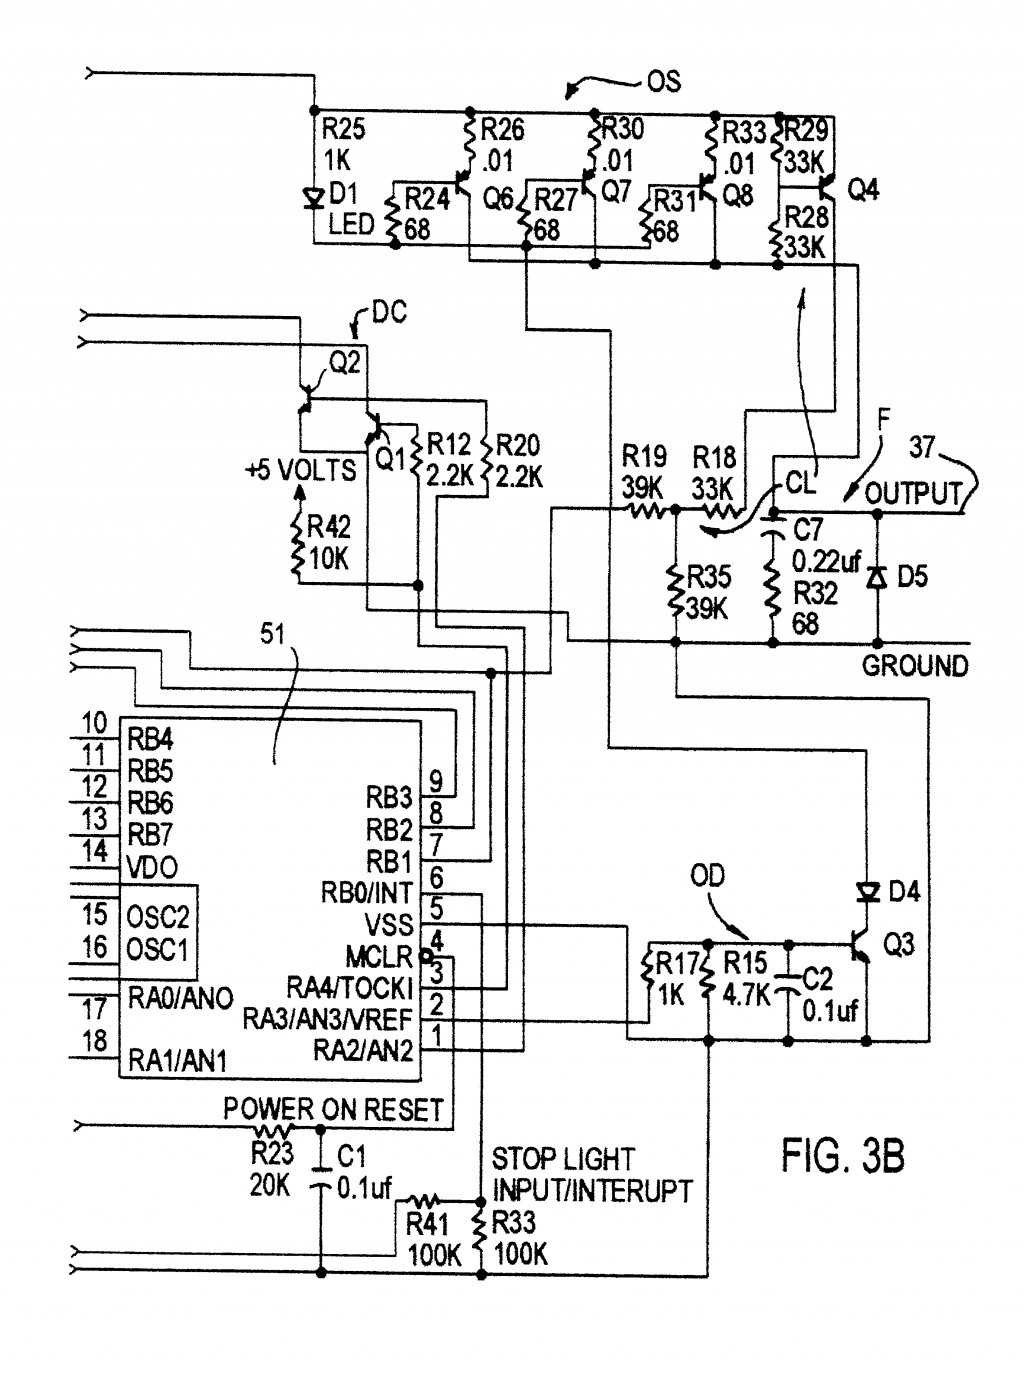 Electric Scooter Wiring Diagram Guitar Diagrams Breakaway Kit Installation For Single And Dual Brake Axle Trailers Inside Trailer